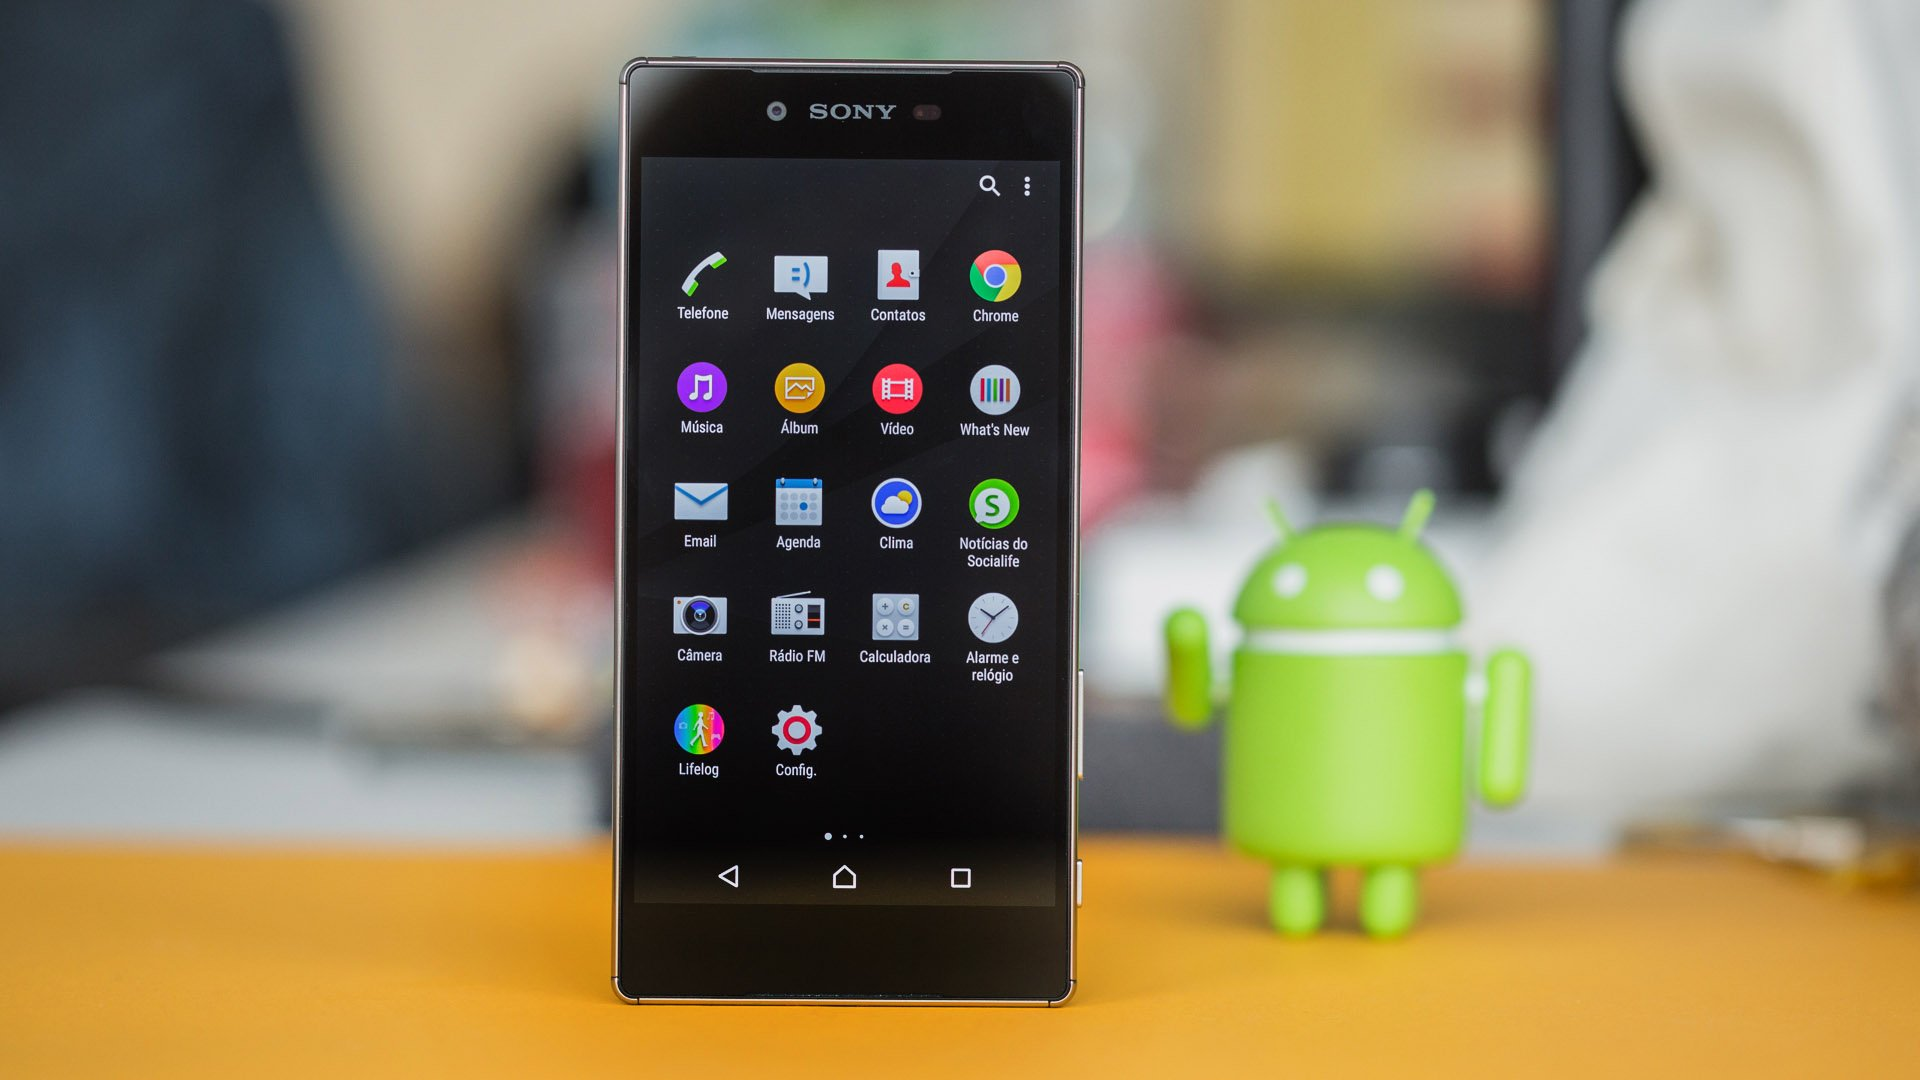 Sony Xperia Z5 Premium Review 4k Forte Hardware Reviews